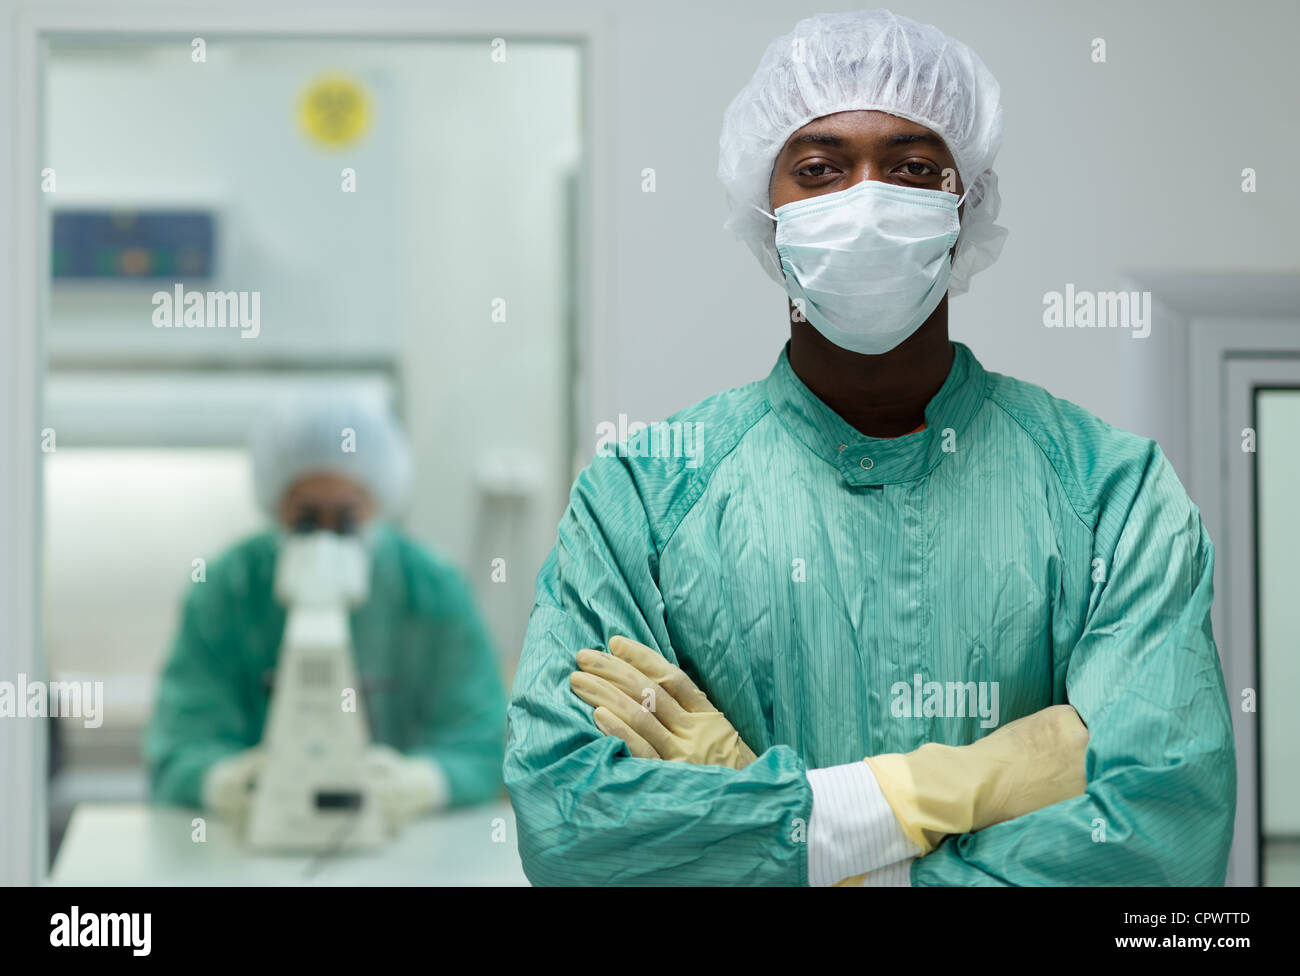 Portrait of man working in biotechnology research center with woman looking through microscope in background - Stock Image